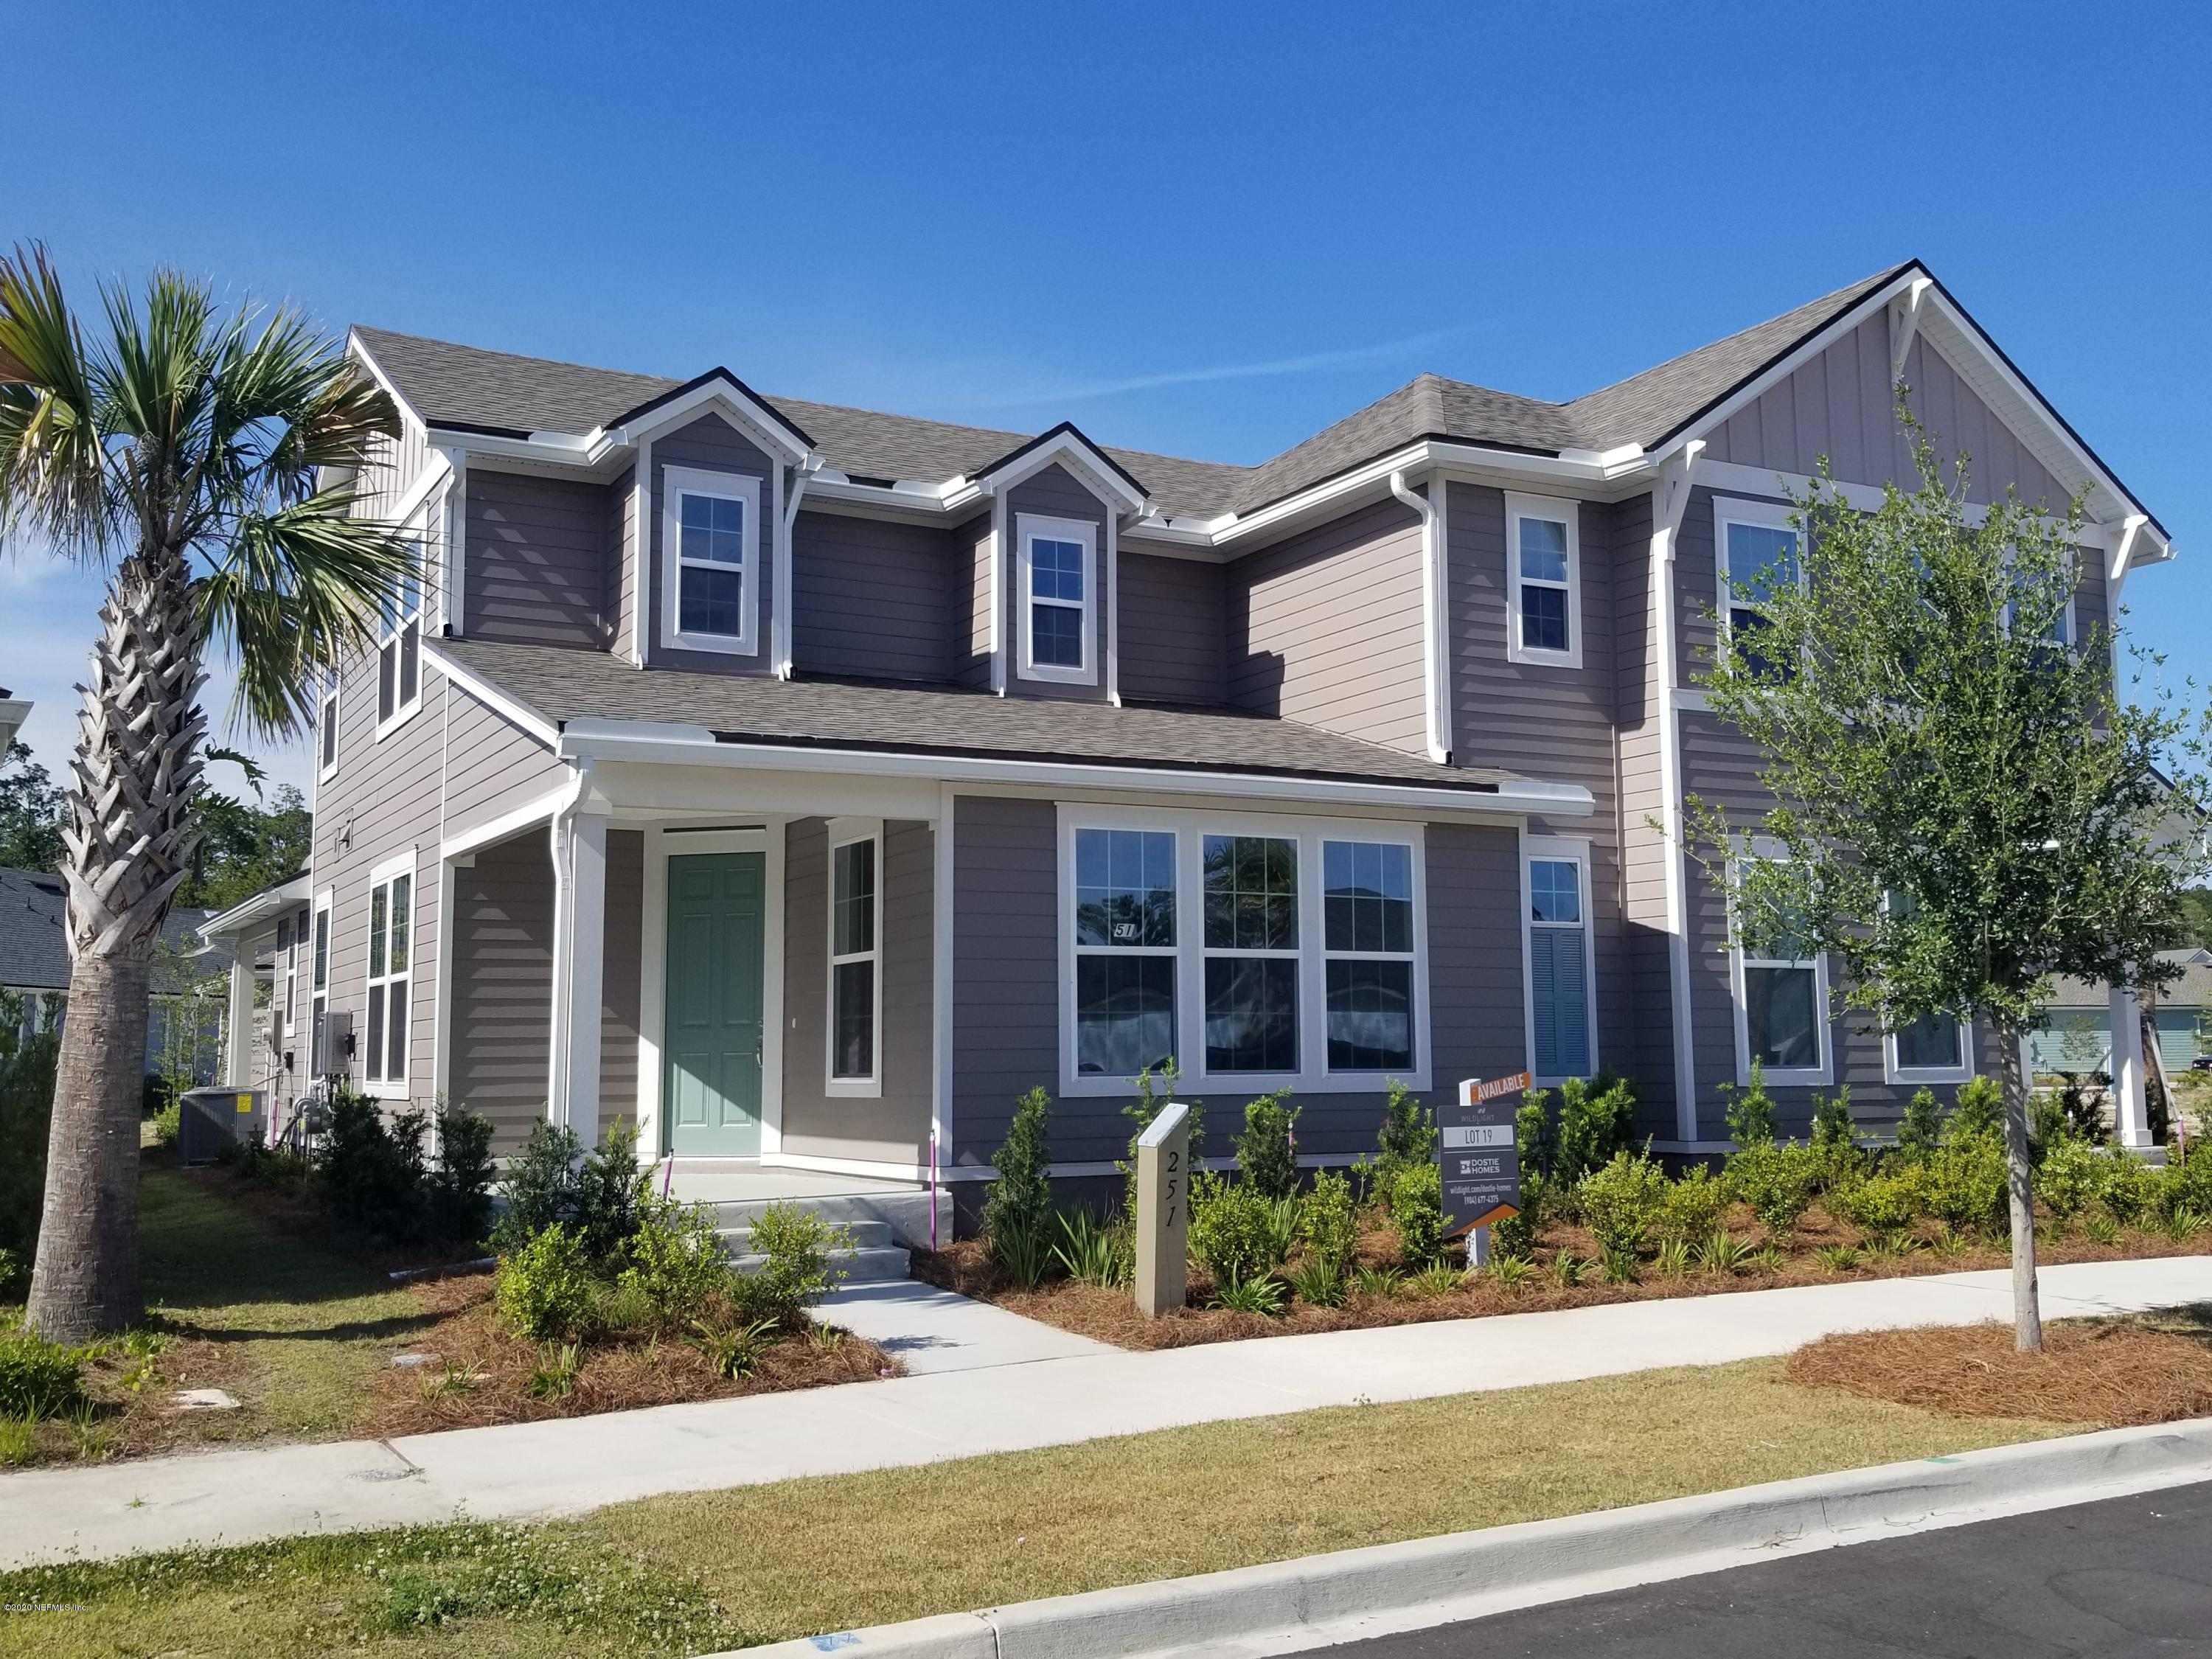 Details for 251 Daydream Ave, YULEE, FL 32097